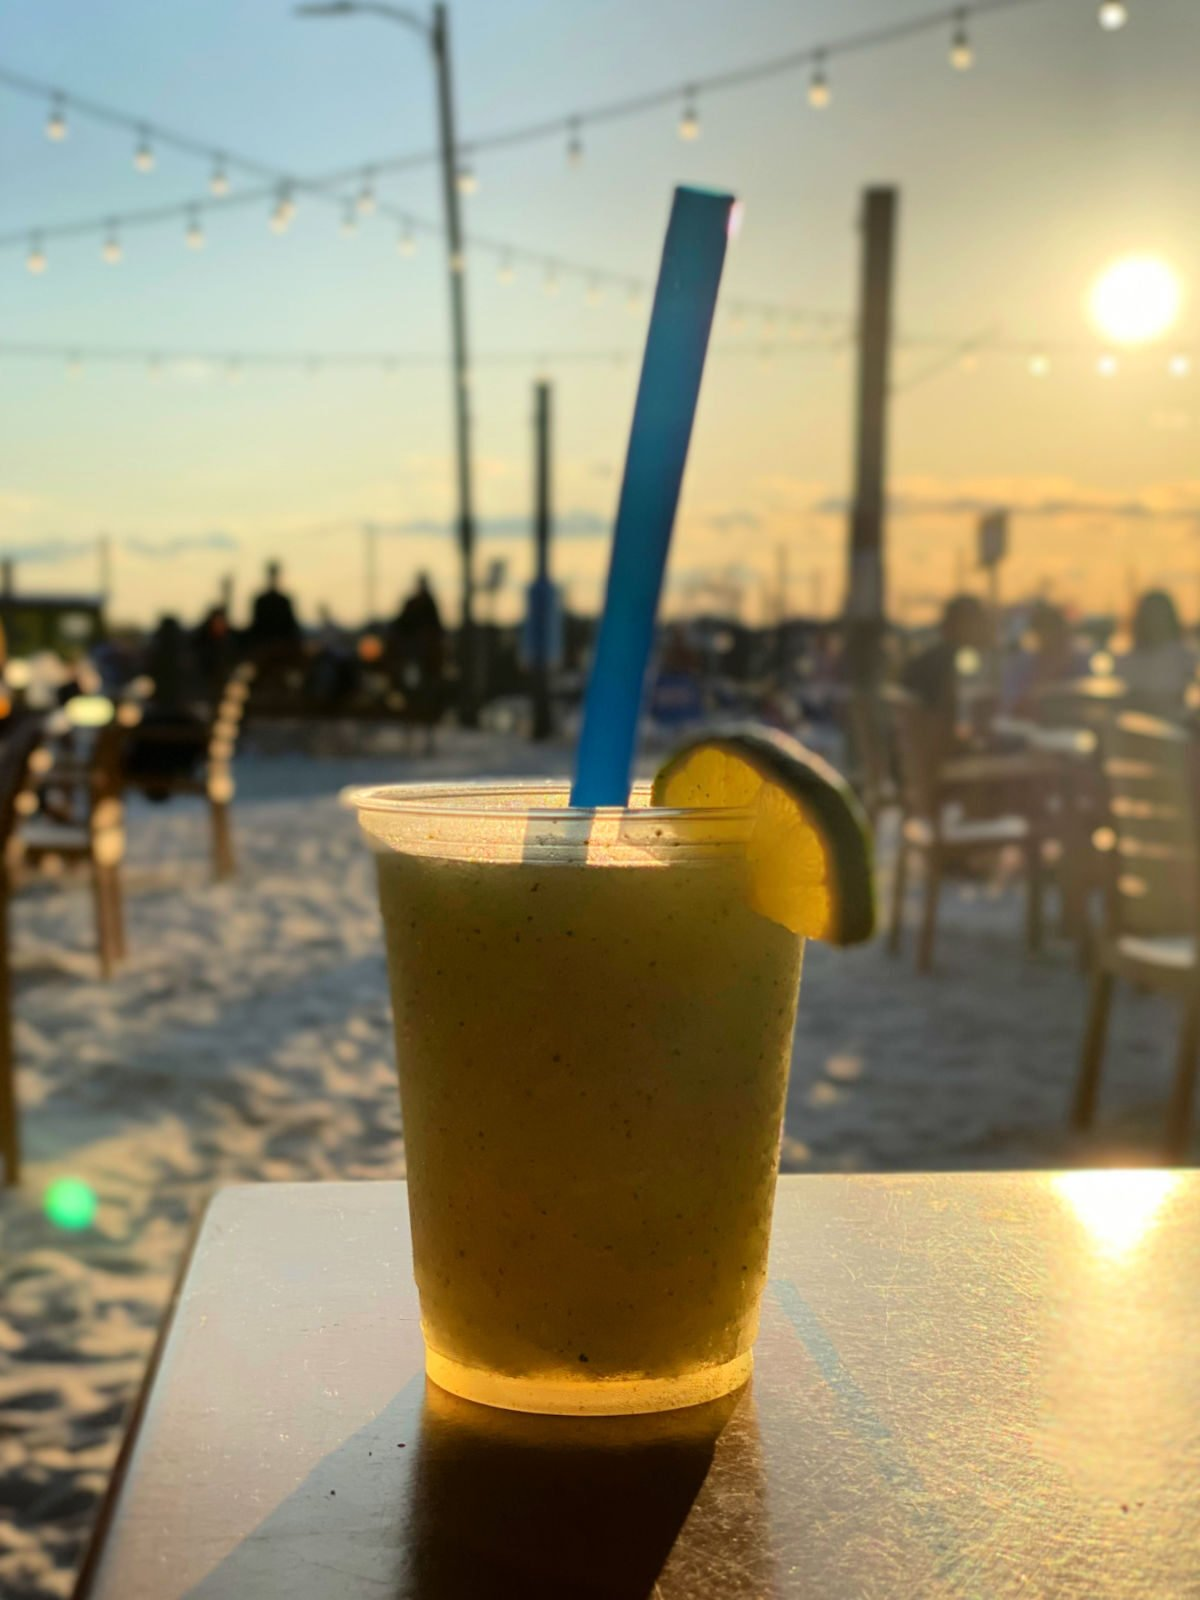 A small mojito on a table with the sun setting in the background.